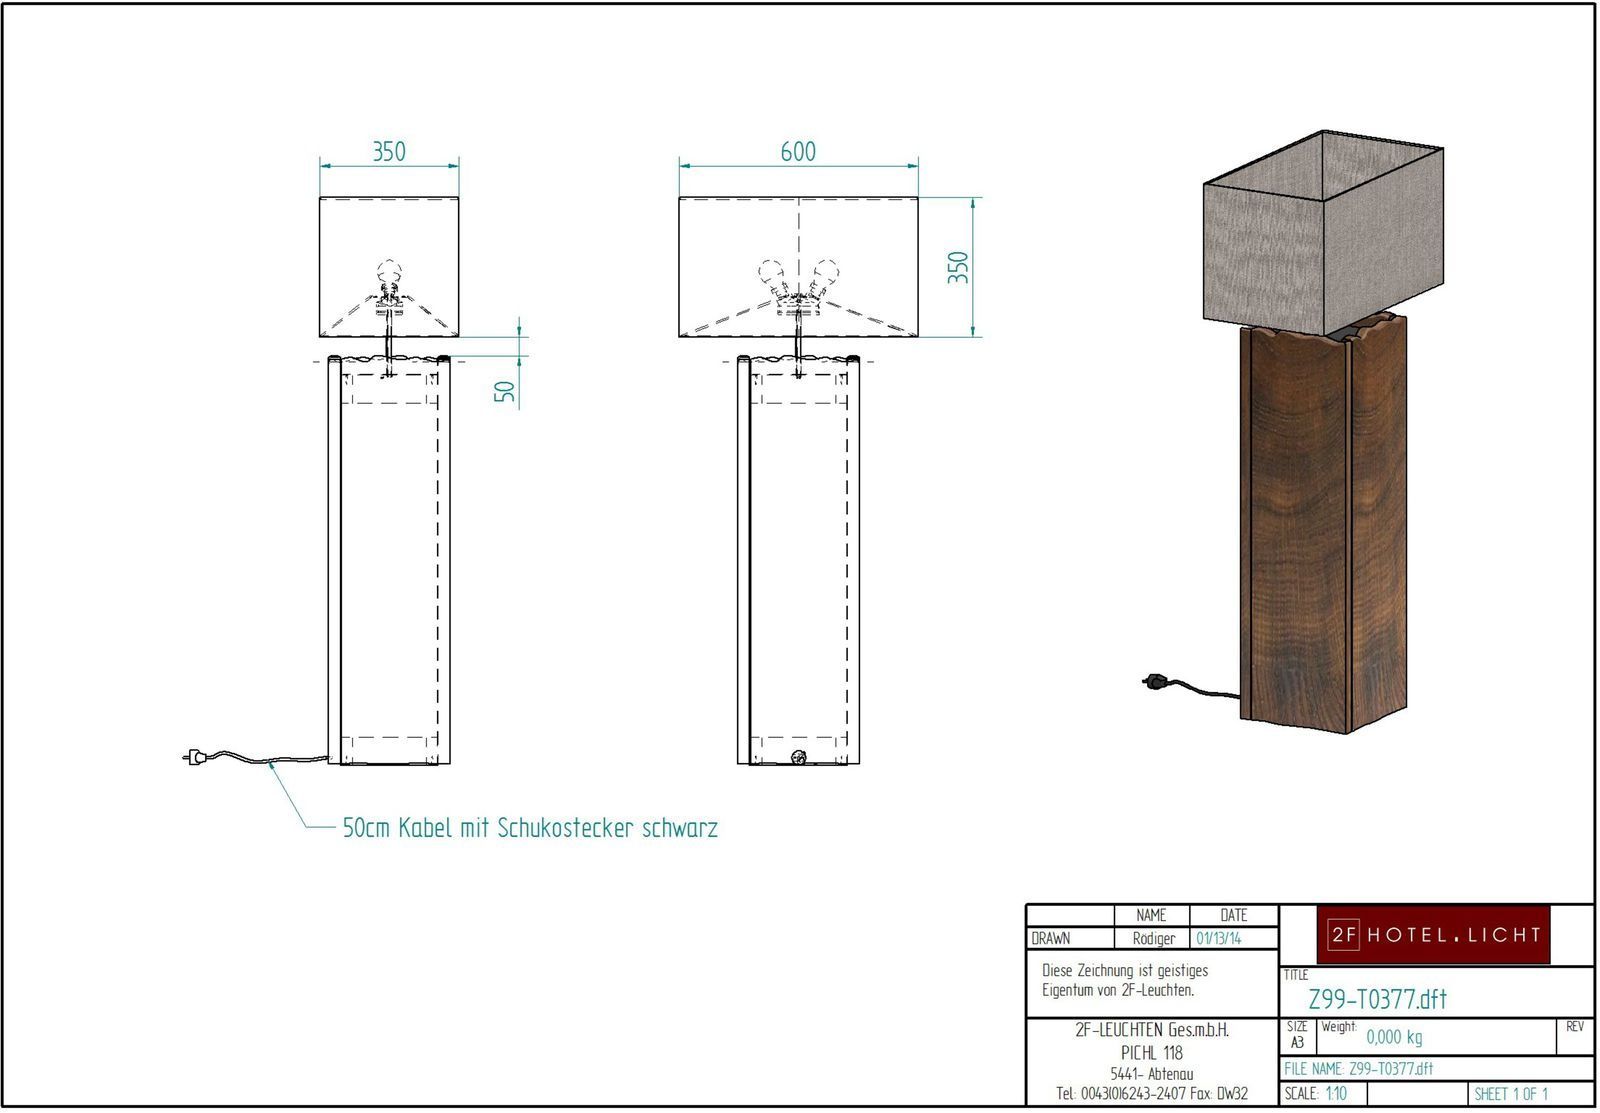 floor lamp, length=600mm, wide=350mm, height=1450mm, surface: ABR Antique brown, techn. Data: 2xE27, 52W Energy Saver, black cable